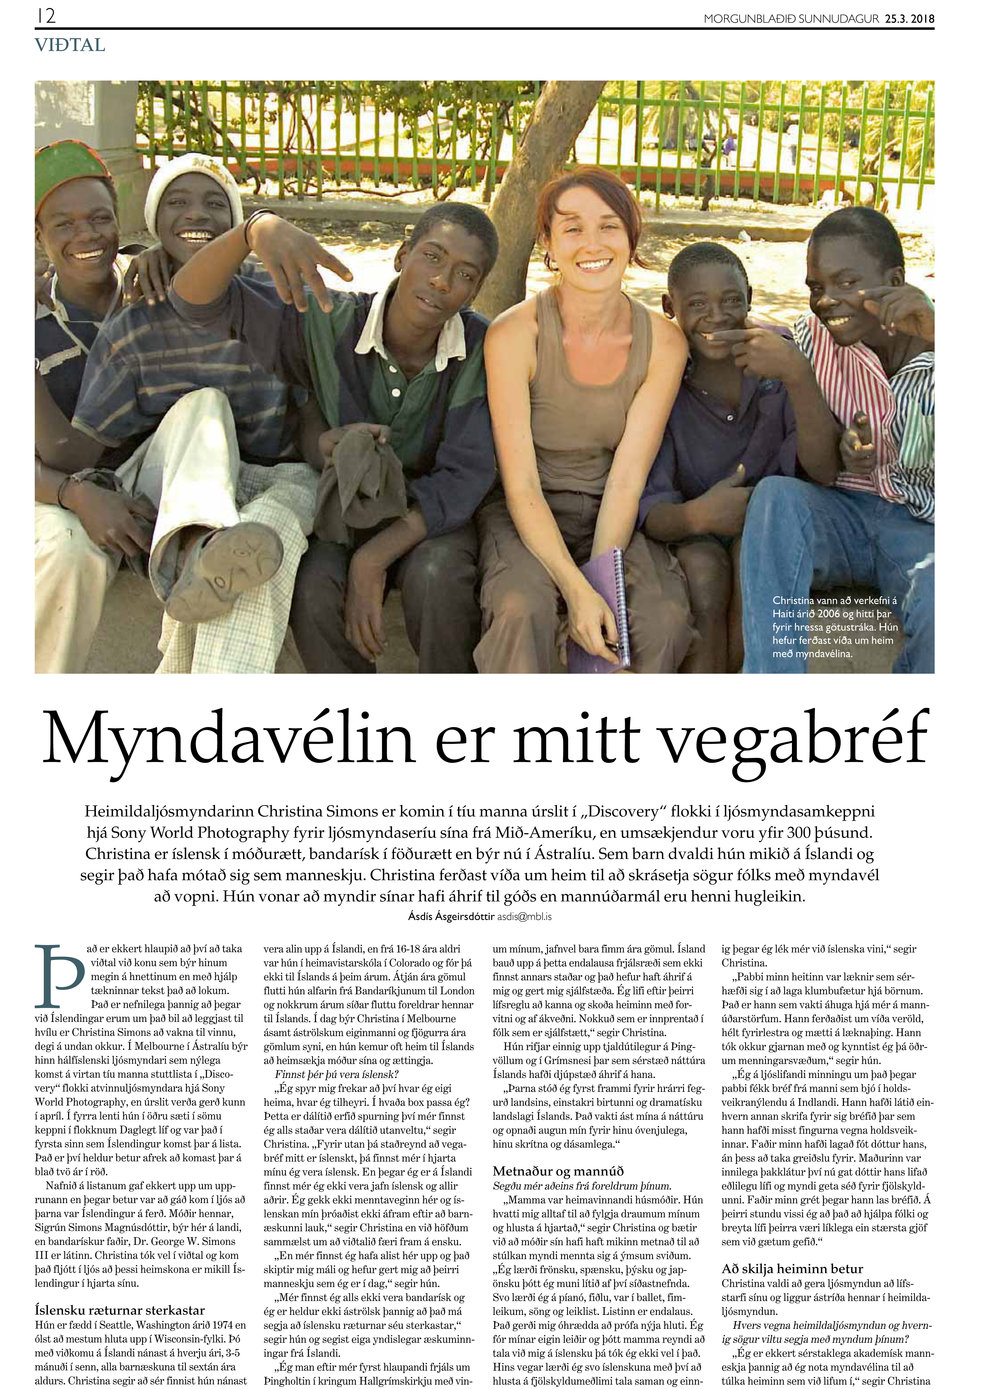 Morgunblaðið (Iceland's main Newspaper) Sunday Magazine March 2018 Page 12